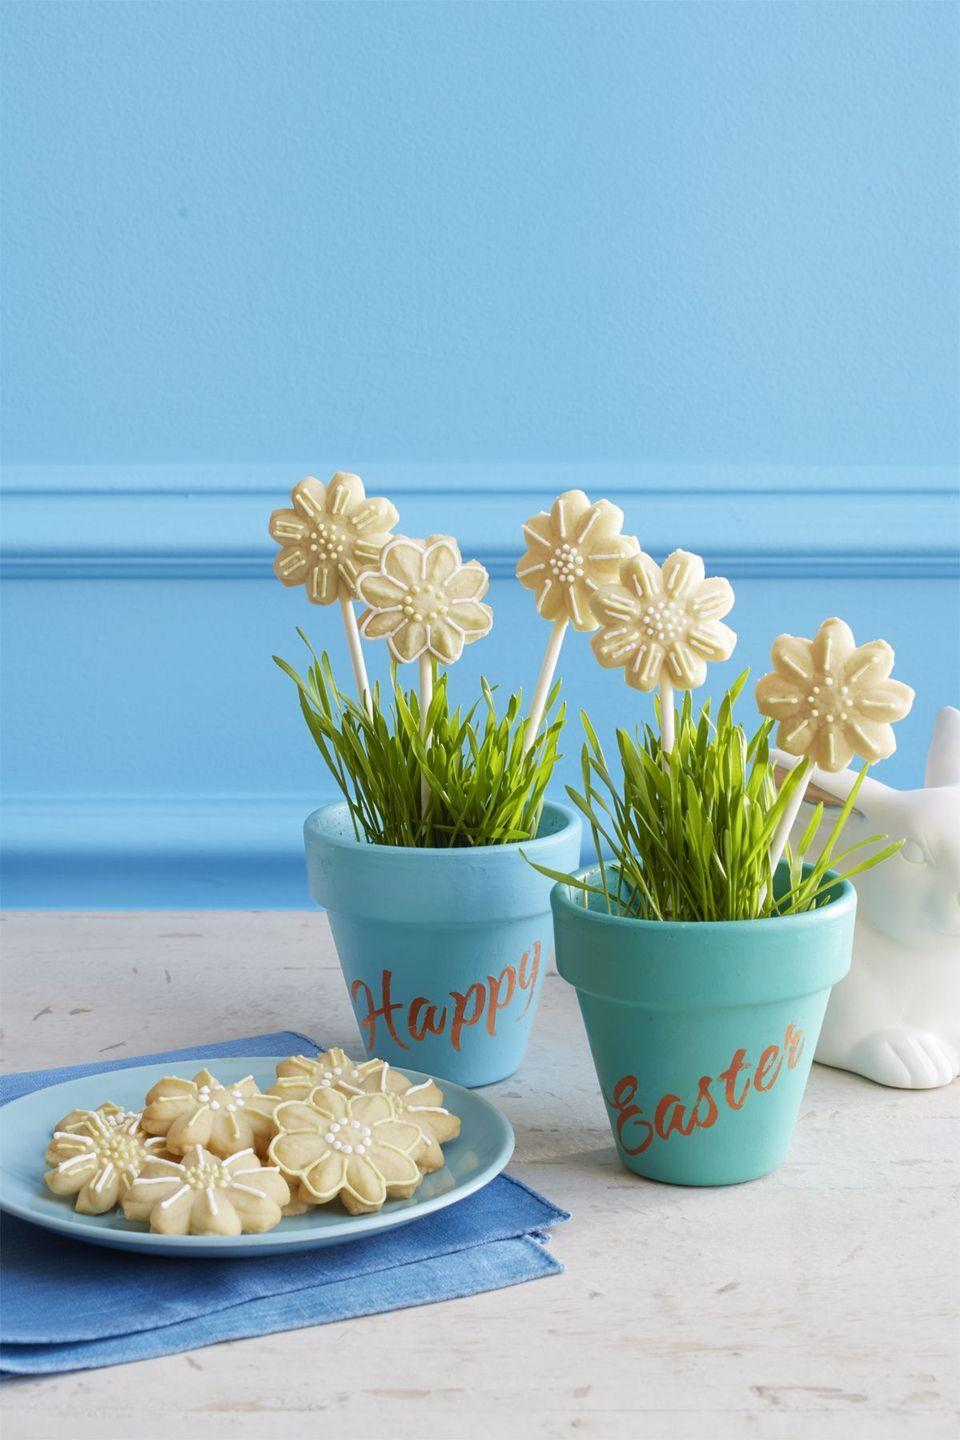 """<p>These adorable daisy cookies are easy to make and fun to decorate, and no matter how you choose to display them, they'll be sure to brighten up your dessert table at your next Easter gathering. </p><p><strong><em><a href=""""https://www.womansday.com/food-recipes/food-drinks/recipes/a58136/spritz-daisy-cookies-recipe/"""" rel=""""nofollow noopener"""" target=""""_blank"""" data-ylk=""""slk:Get the Spritz Daisy Cookies recipe."""" class=""""link rapid-noclick-resp"""">Get the Spritz Daisy Cookies recipe. </a></em></strong></p>"""